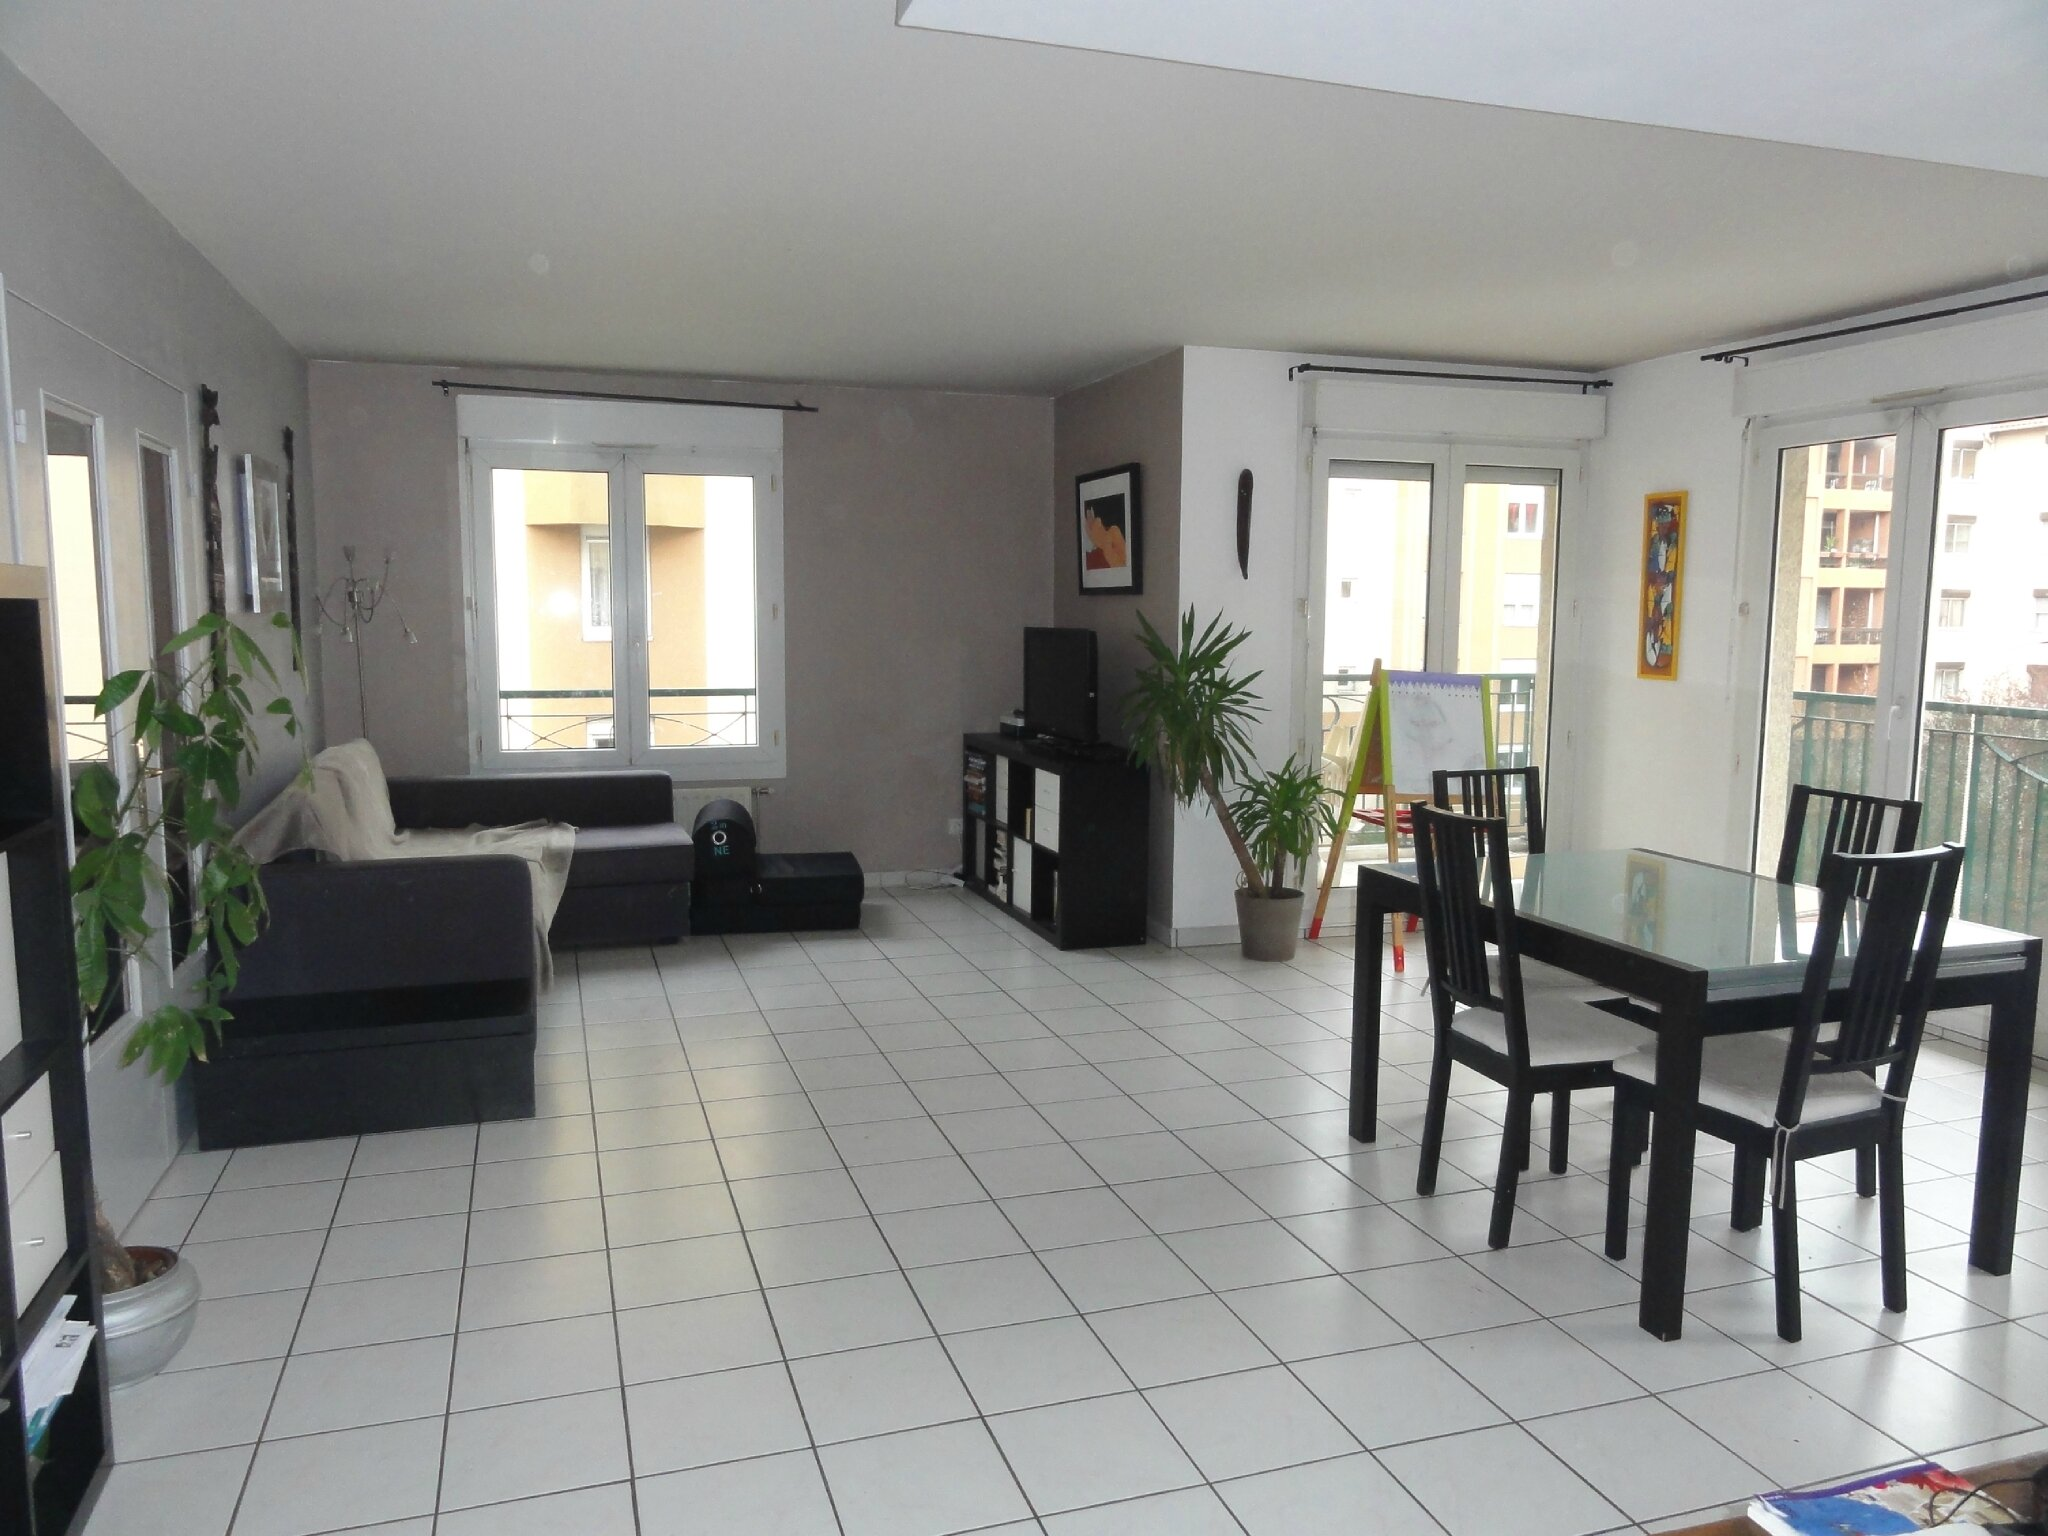 Location appartement t3 lyon for Location logement